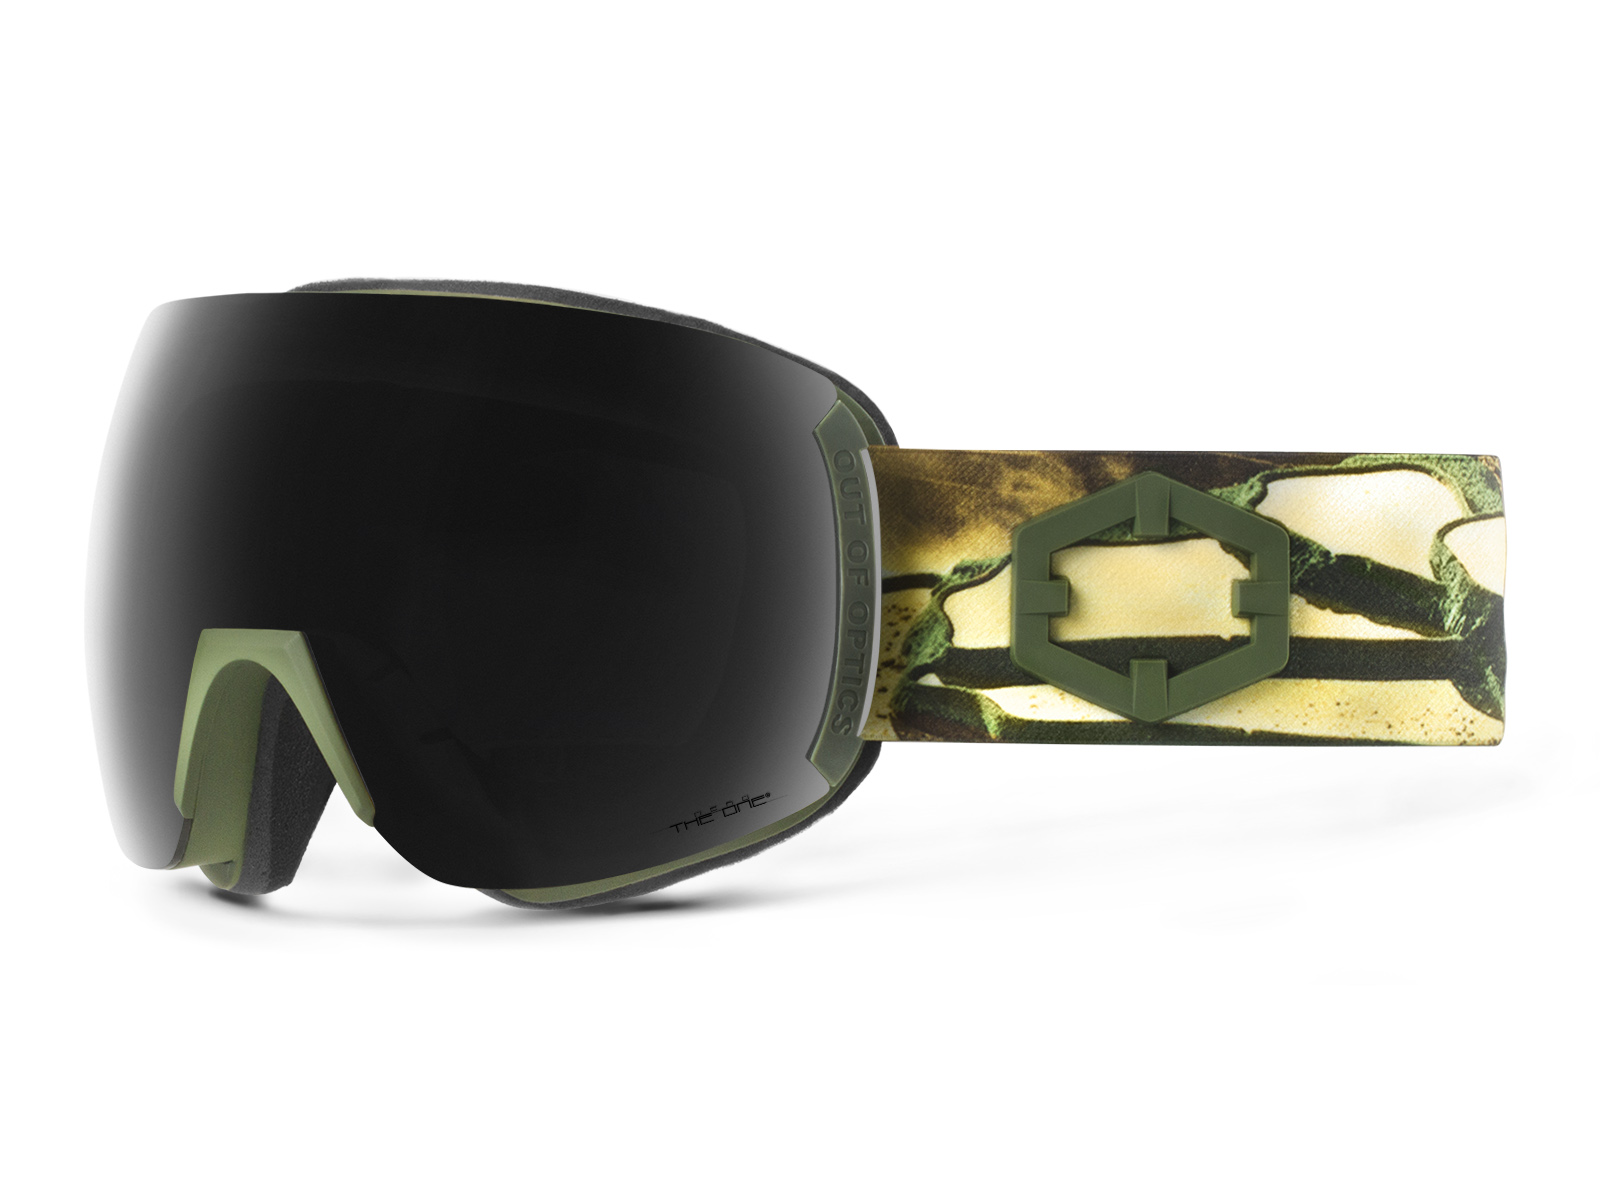 EARTH EASTERN GOLD THE ONE NERO GOGGLE